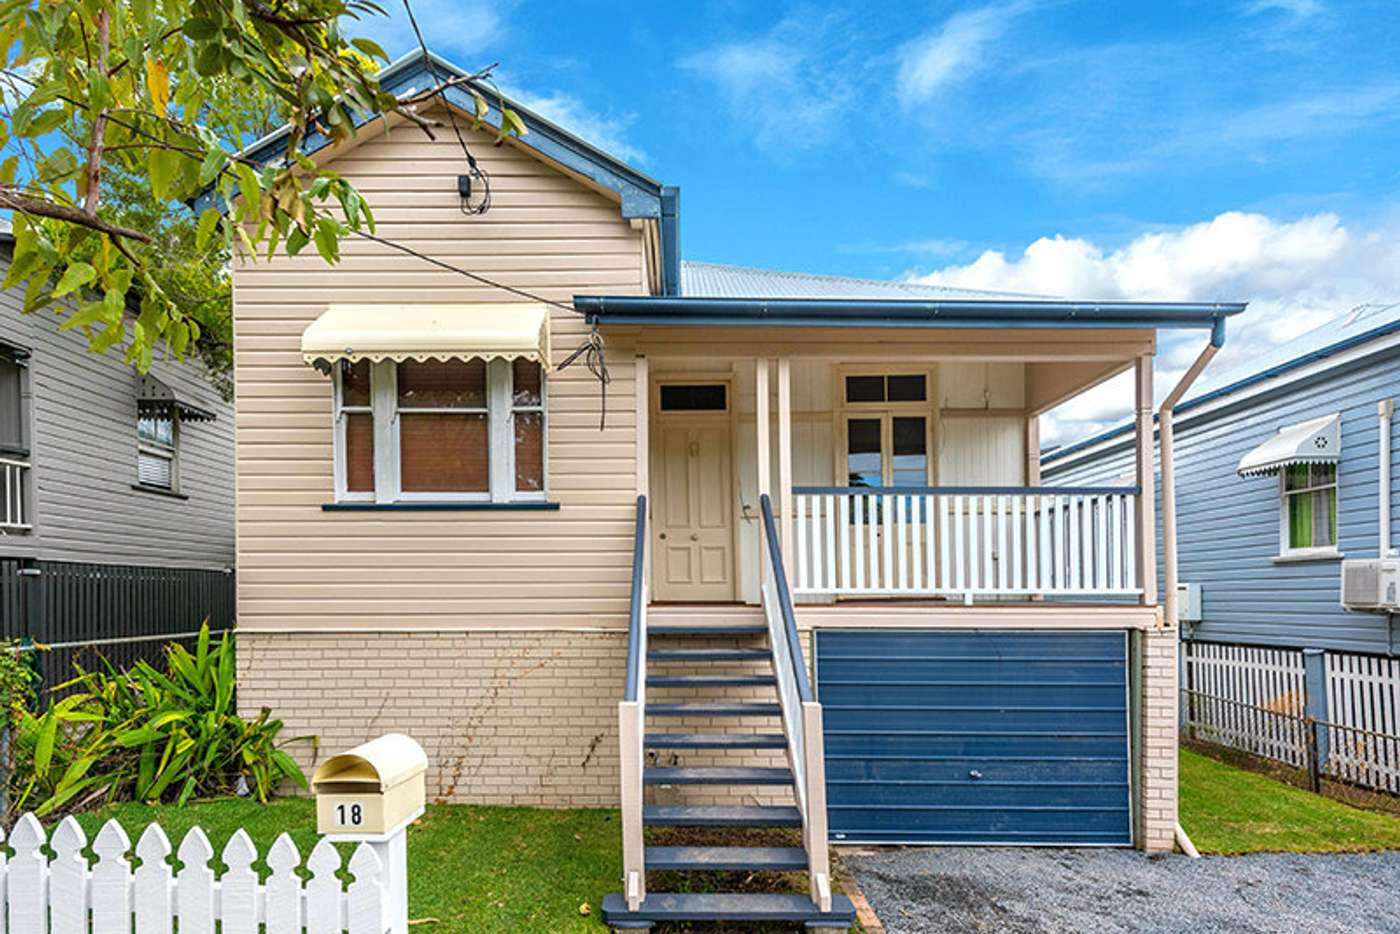 Main view of Homely house listing, 18 Buranda Street, Woolloongabba QLD 4102